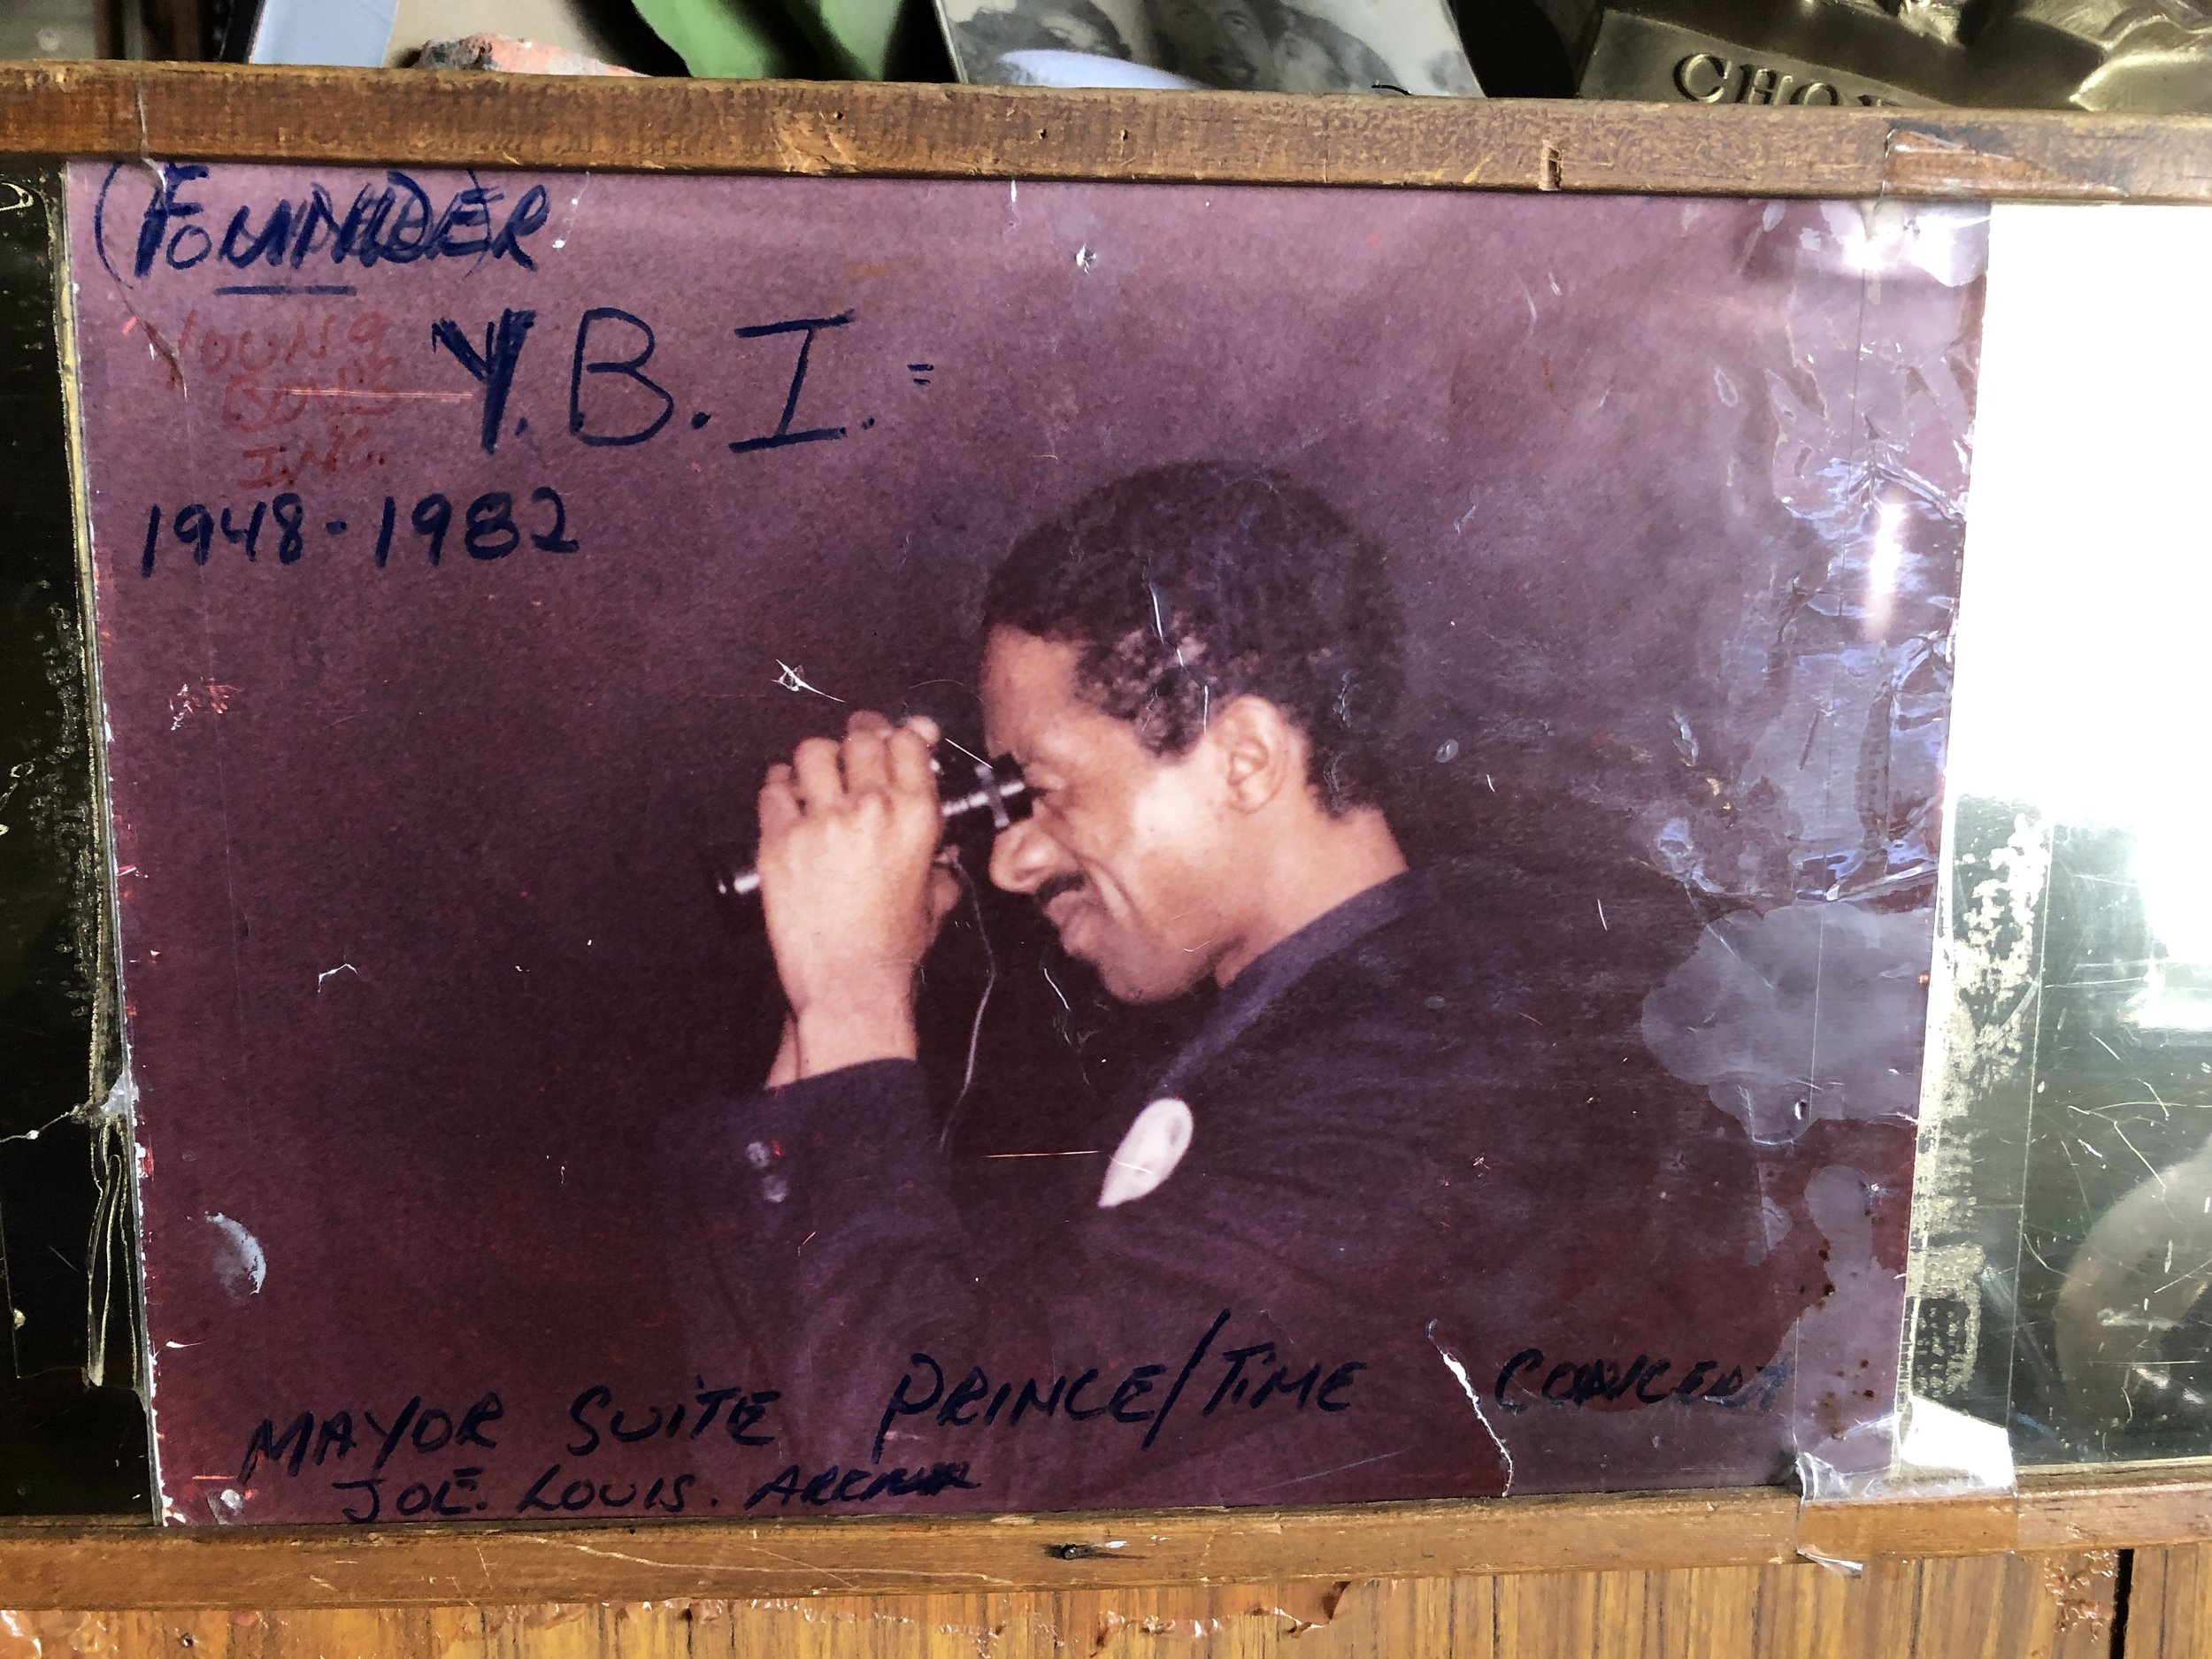 """As a drug supplier to Young Boys Incorporated, Benji Mongo could afford to live lavishly. In this photo, which hangs in Cafe D'Mongo's, Benji is observing a Prince concert from the Mayoral Suite of the Joe Louis Arena.   But when his youngest brother, Skip, started hanging out with Dwayne """"Wonderful Wayne"""" Davis of YBI, Benji made it clear that he did not want Skip in the drug world.  Photo by Drew Nelles."""